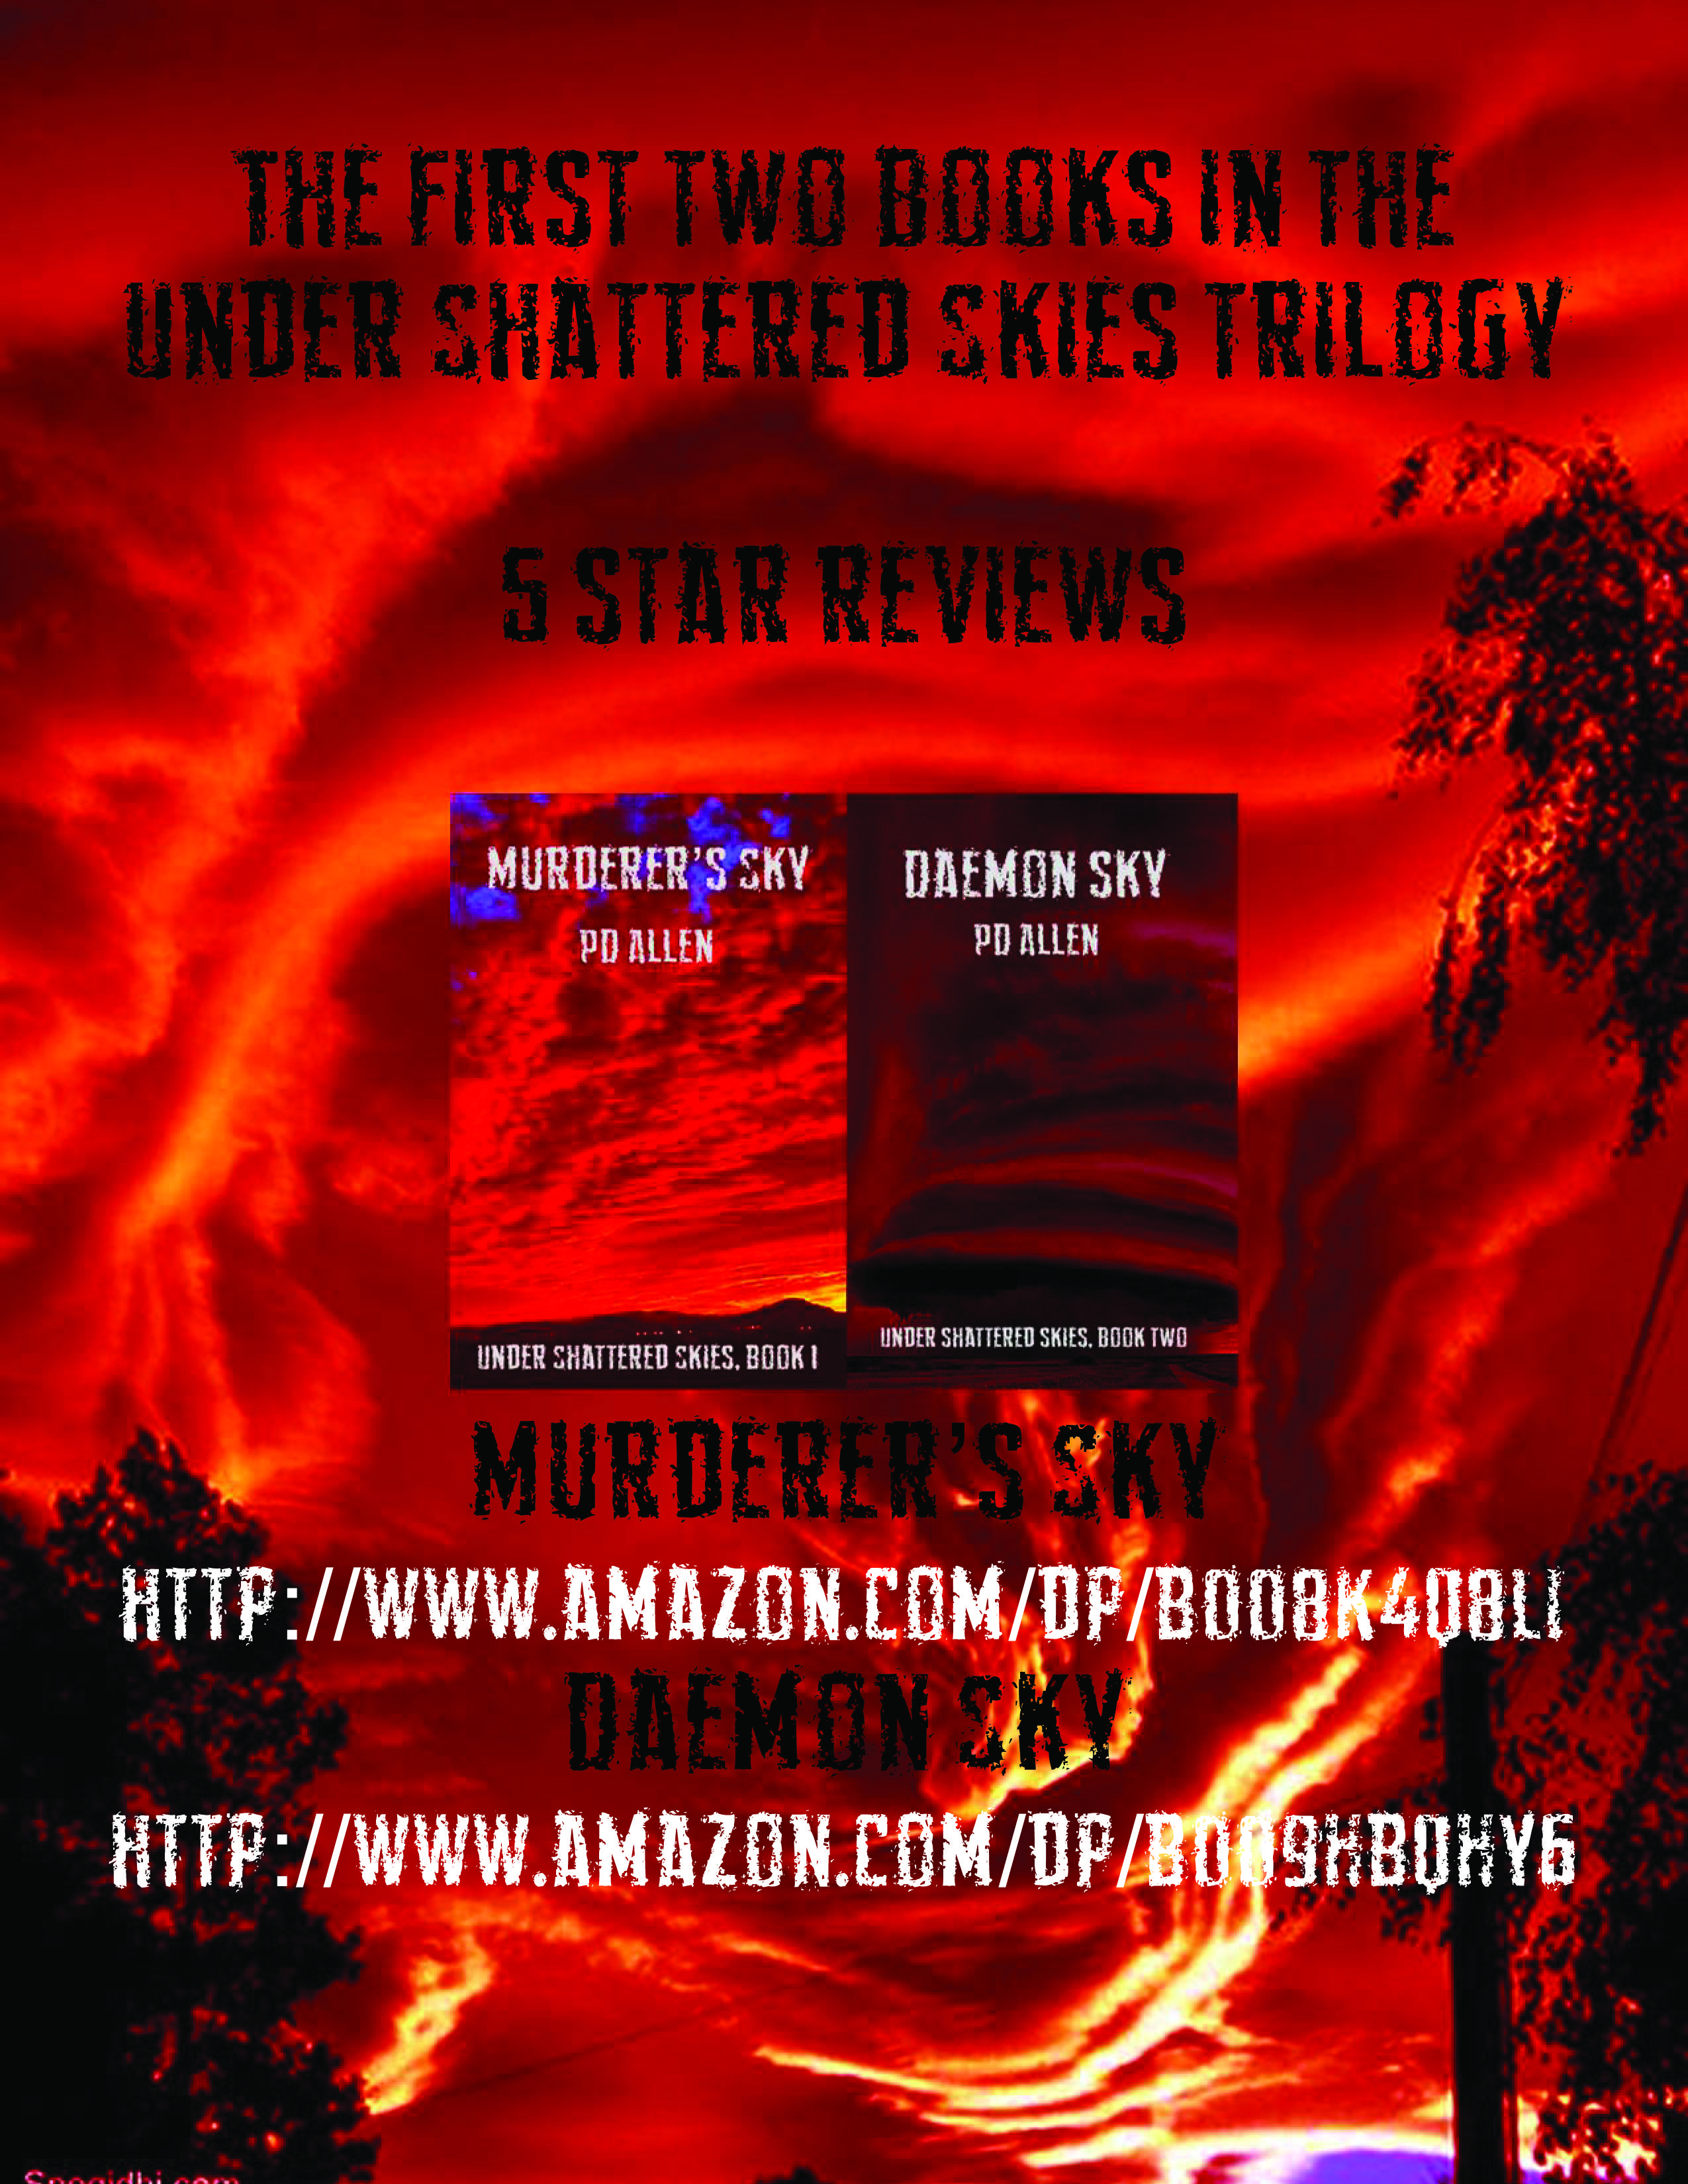 Daemon Sky: Book Two of Under Shattered Skies